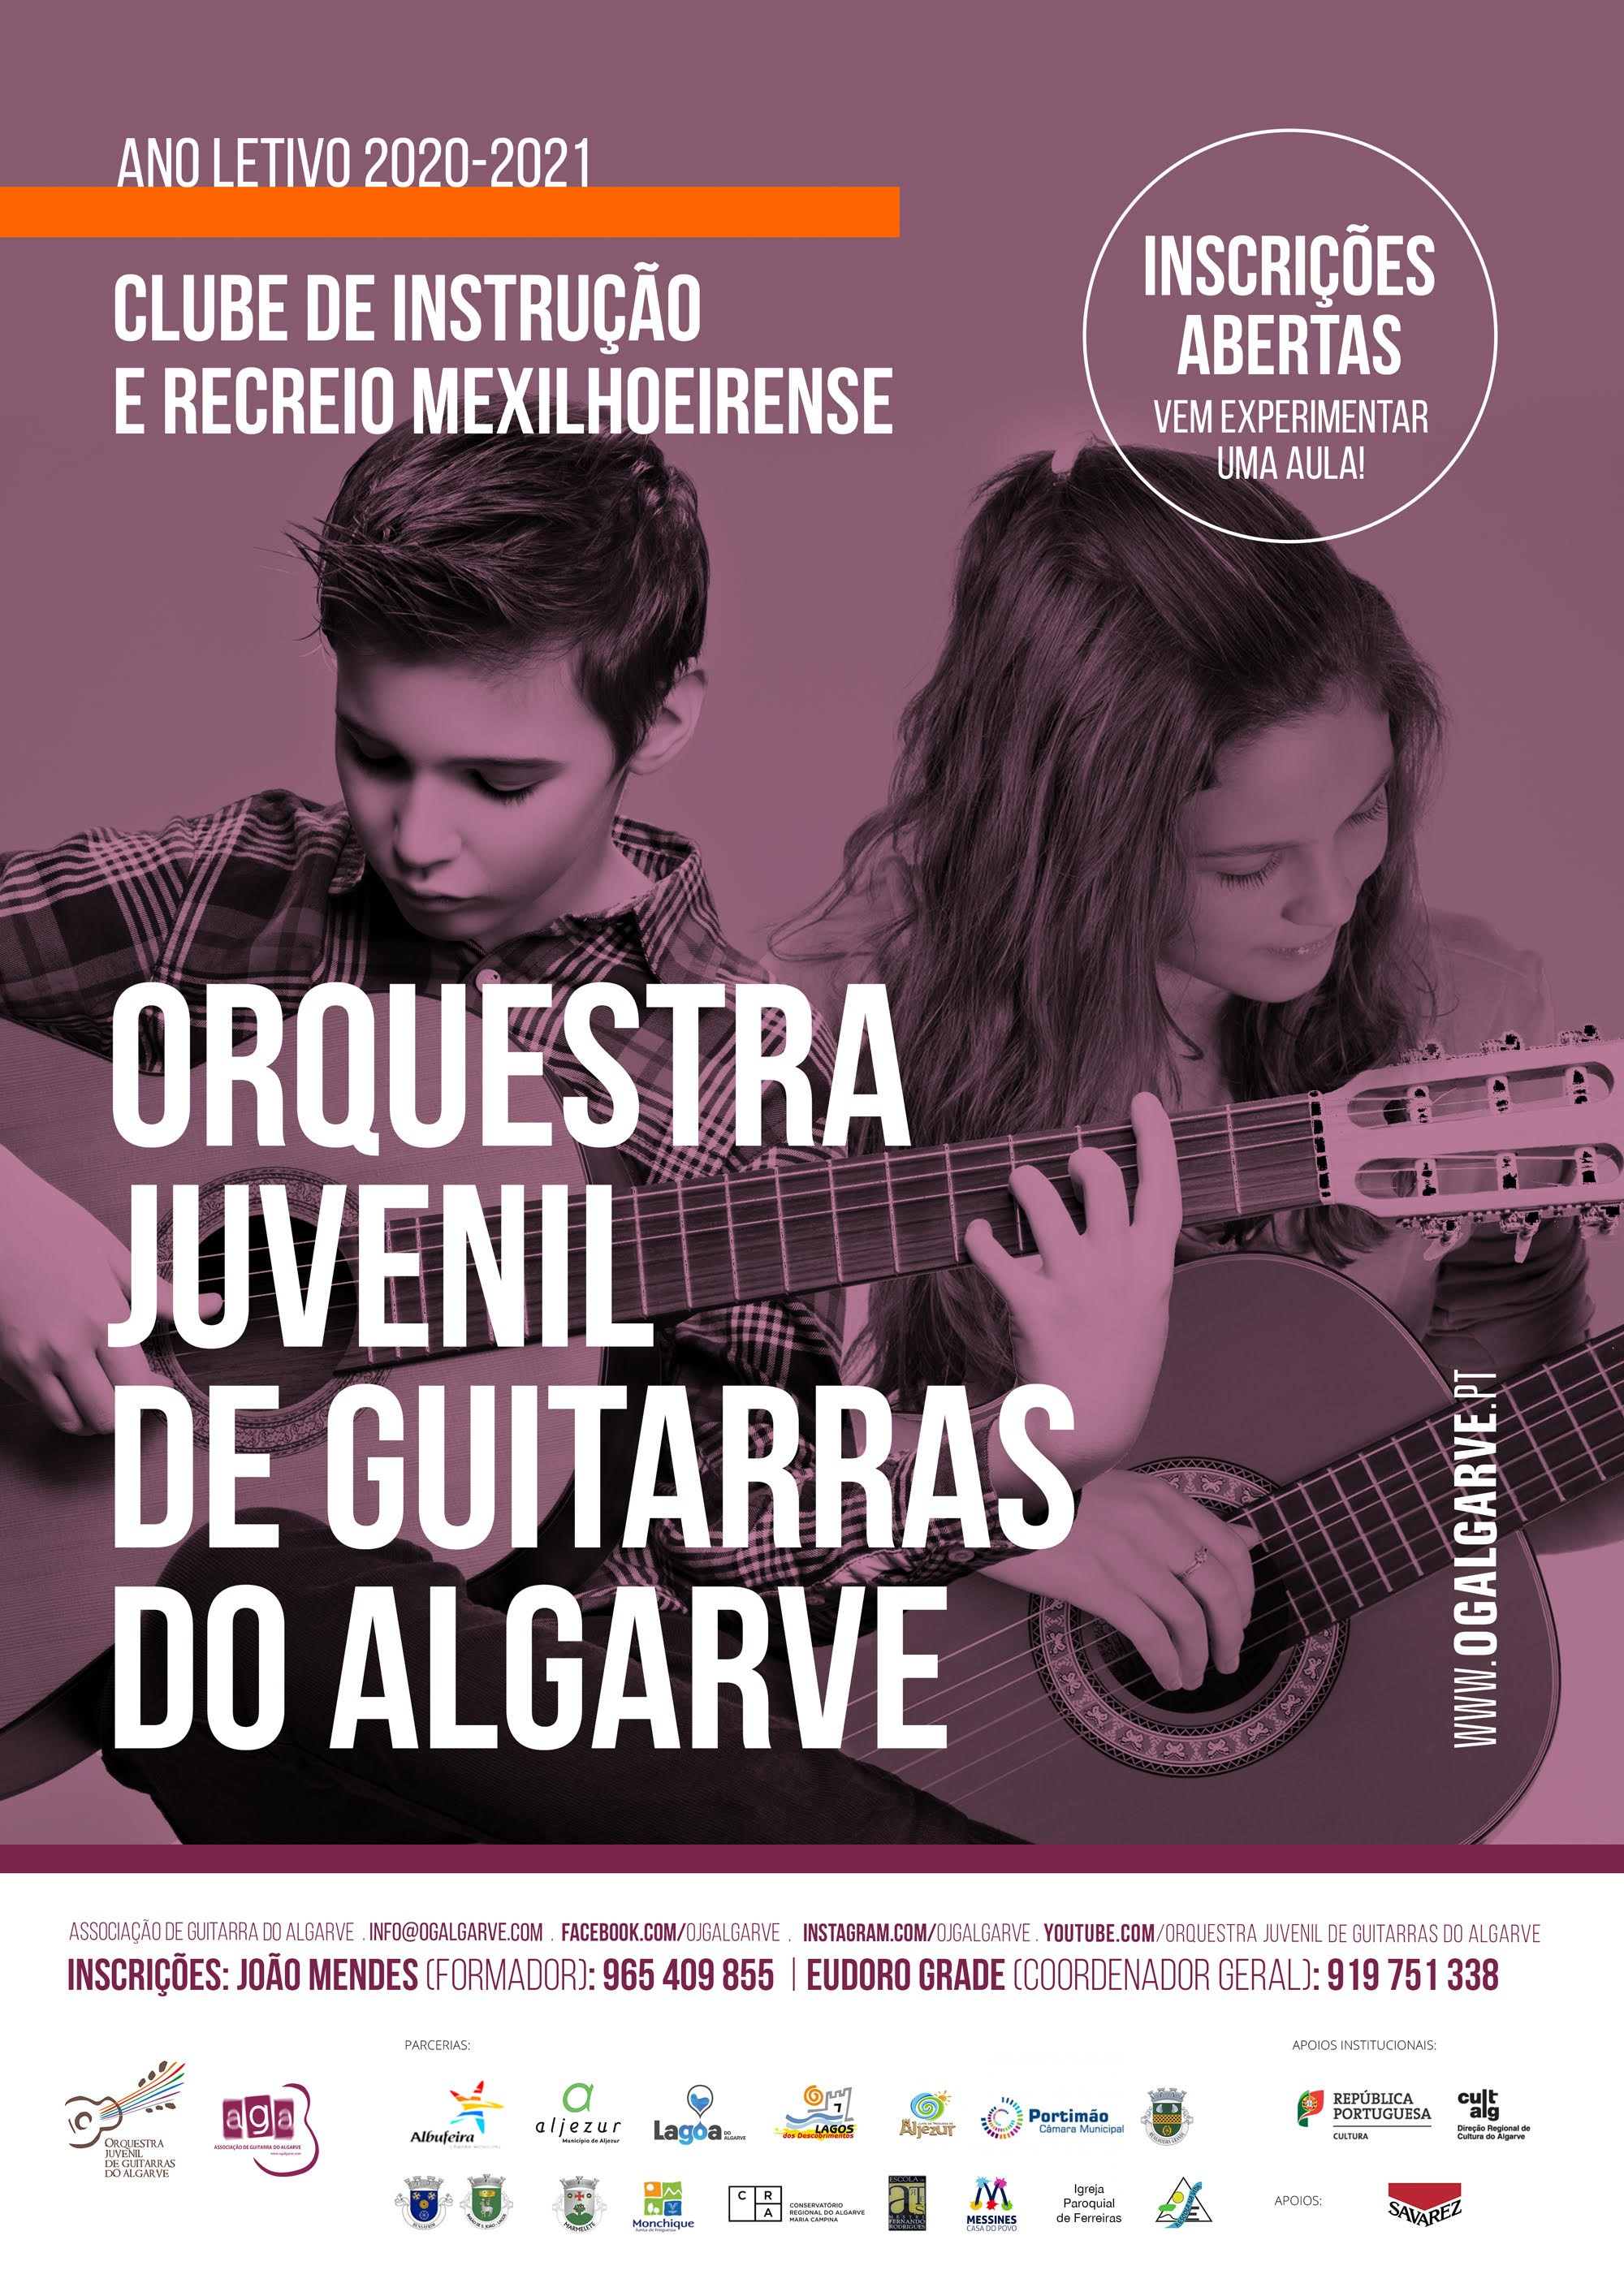 Orquestra Juvenil de Guitarras do Algarve